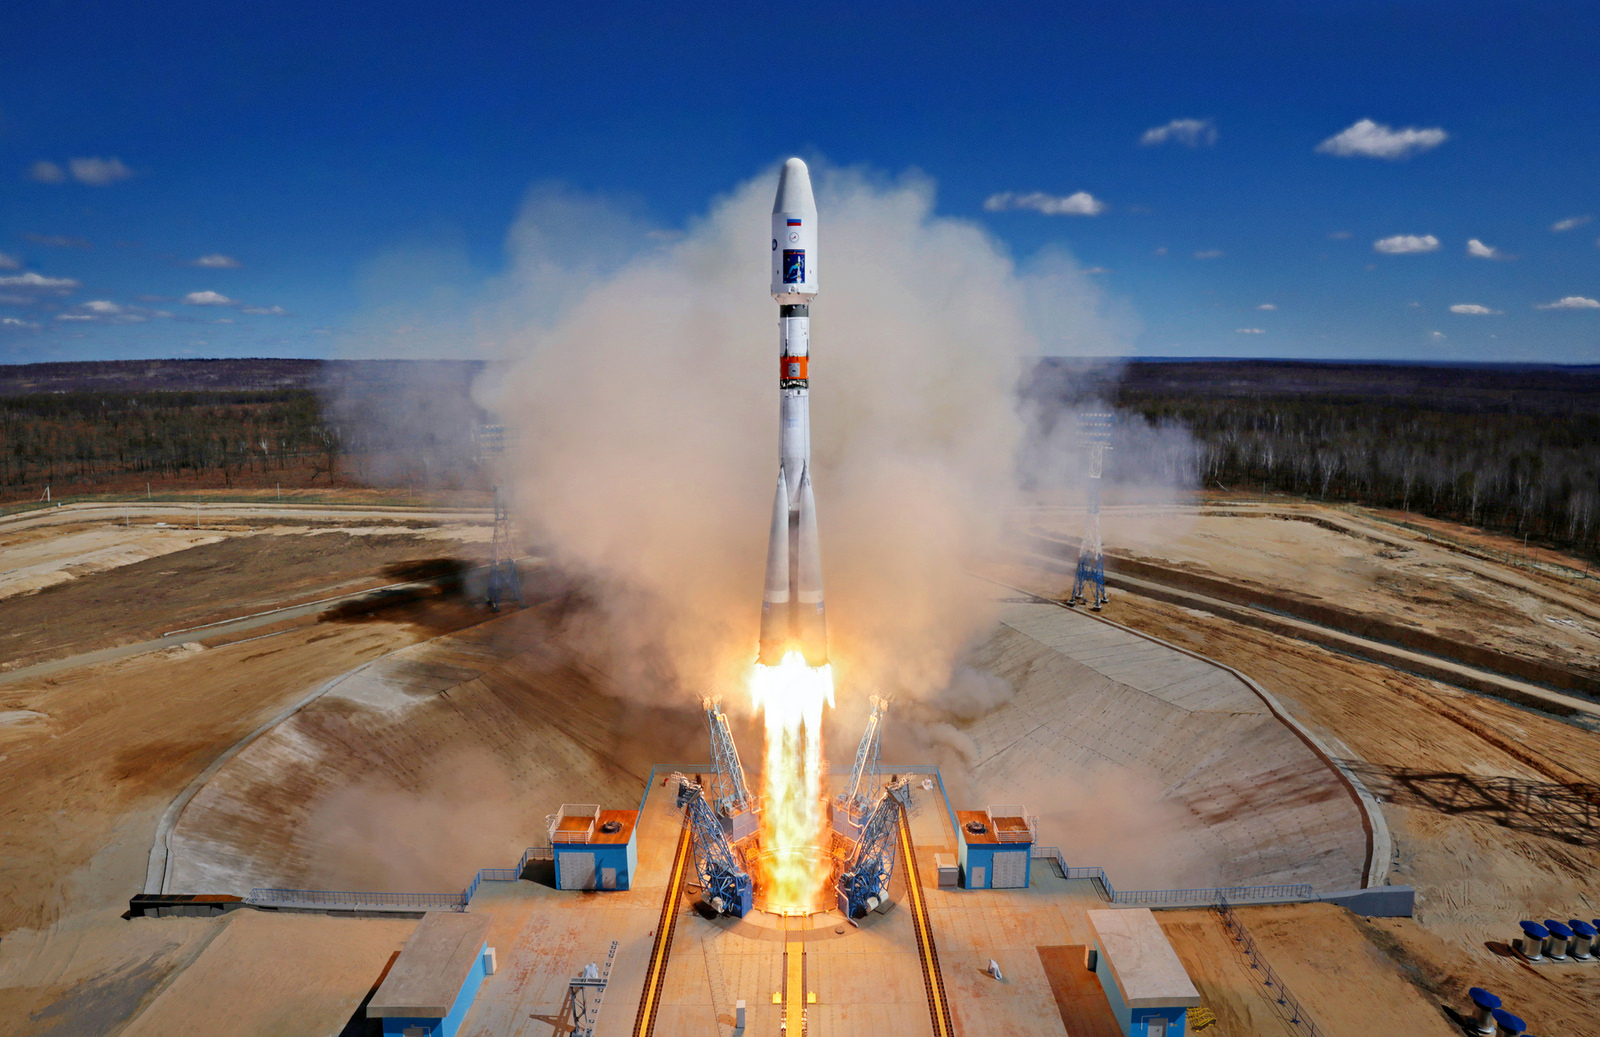 Builders of the Vostochny cosmodrome staged a strike due to non-payment of salaries 03/30/2015 95